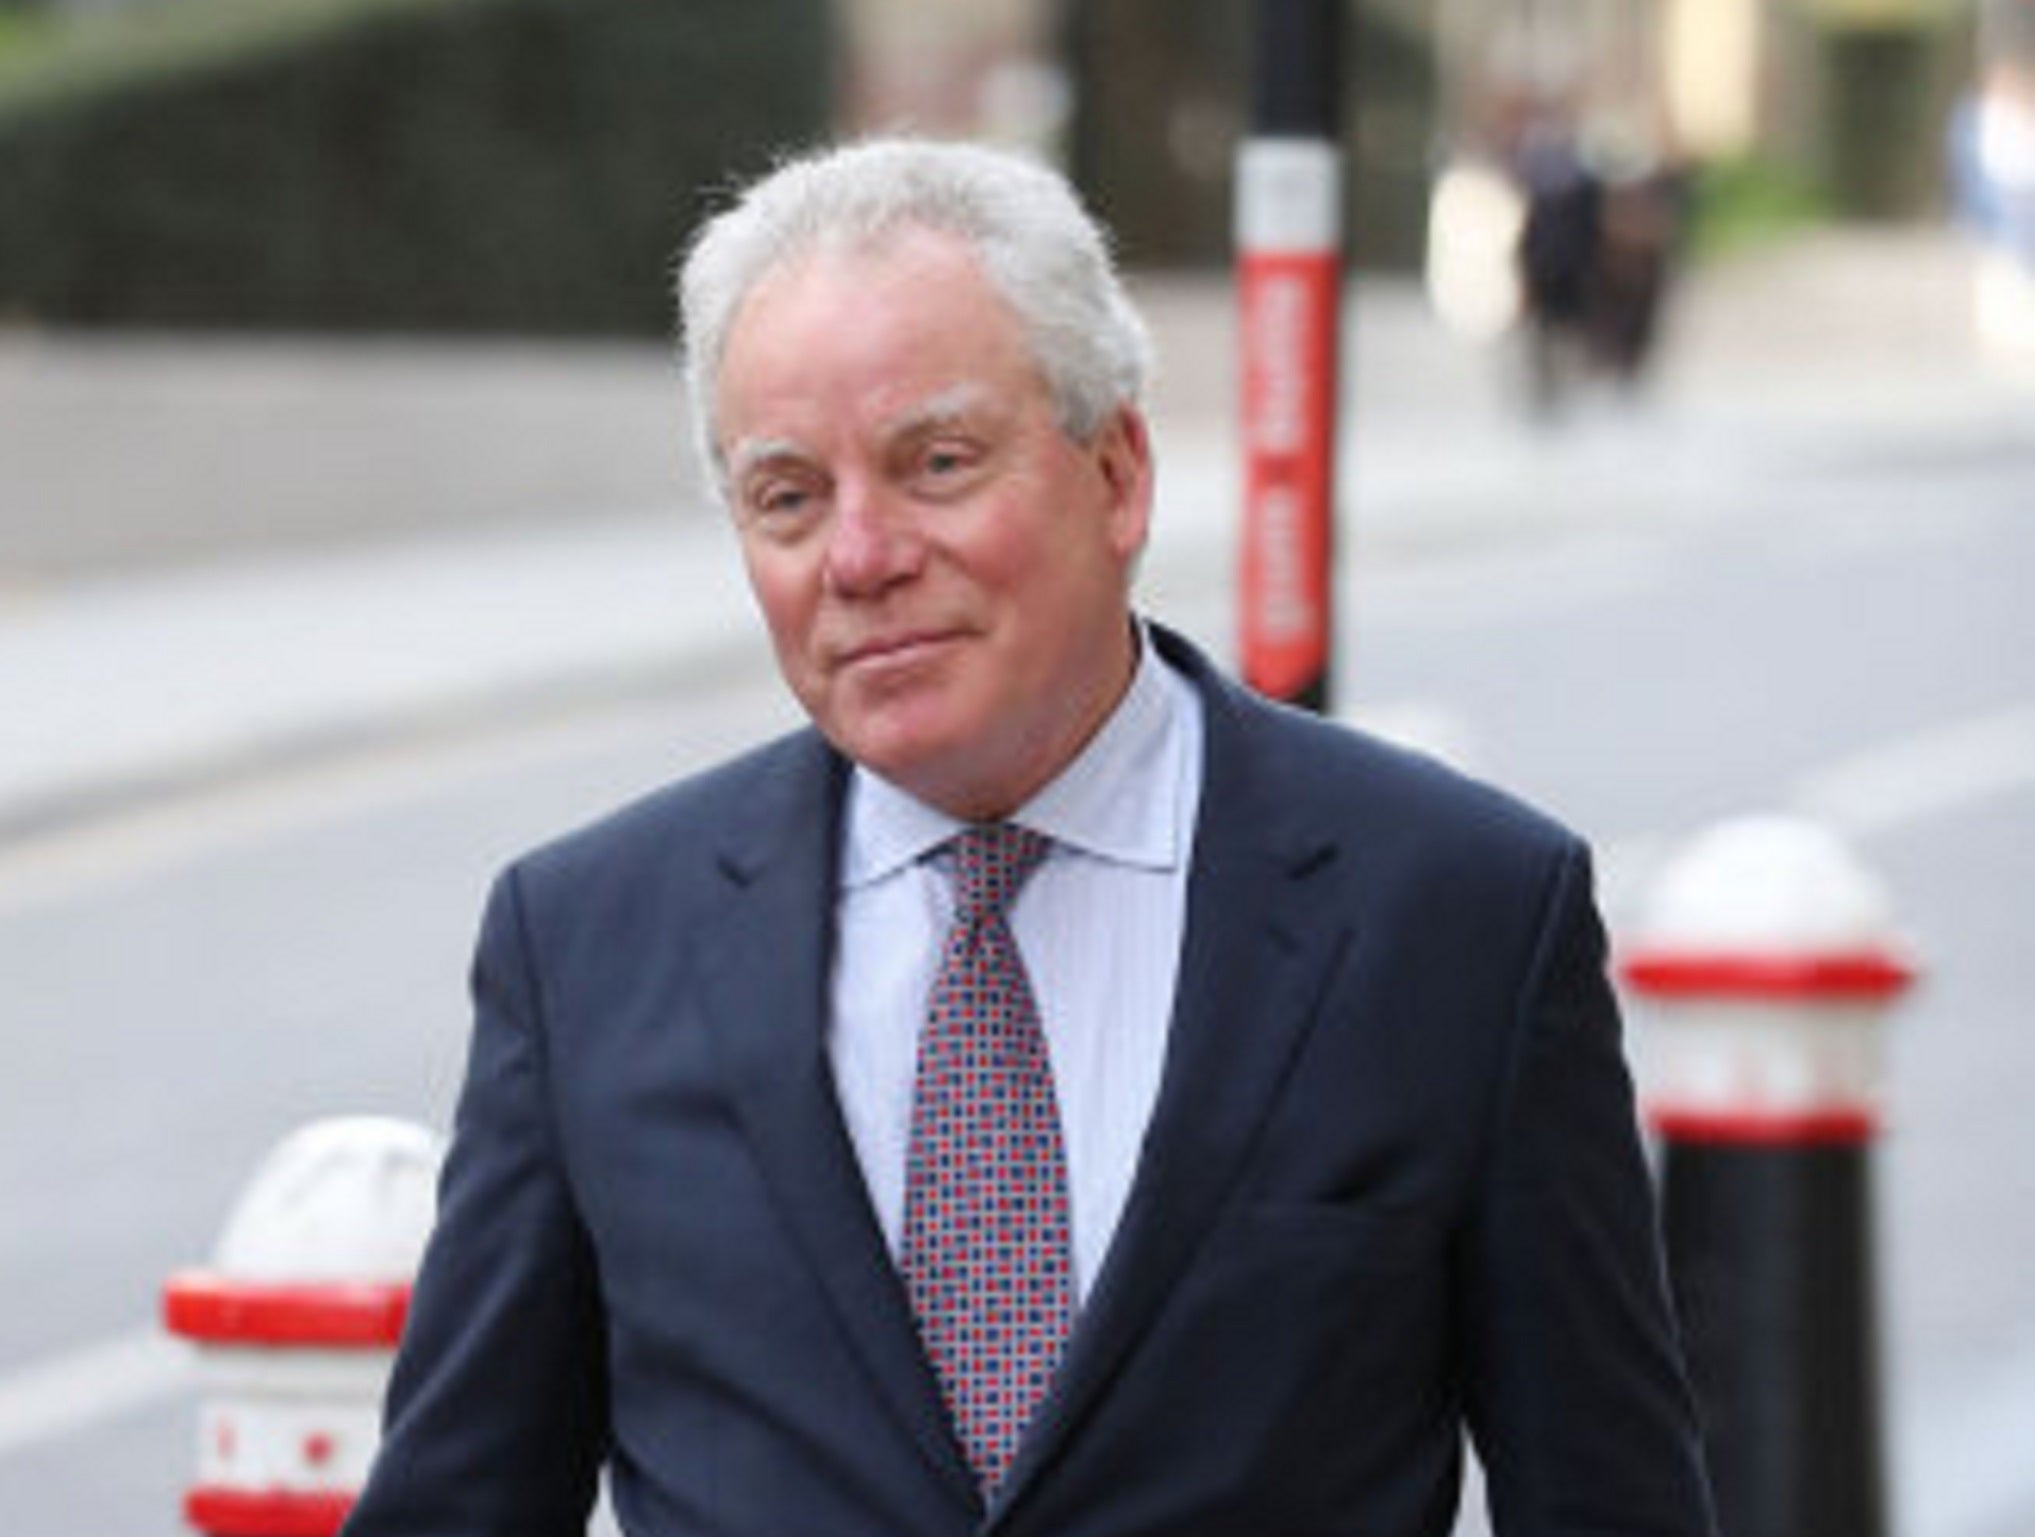 Gordon ramsays father in law jailed for six months for hacking gordon ramsays father in law jailed for six months for hacking chefs computer the independent fandeluxe PDF